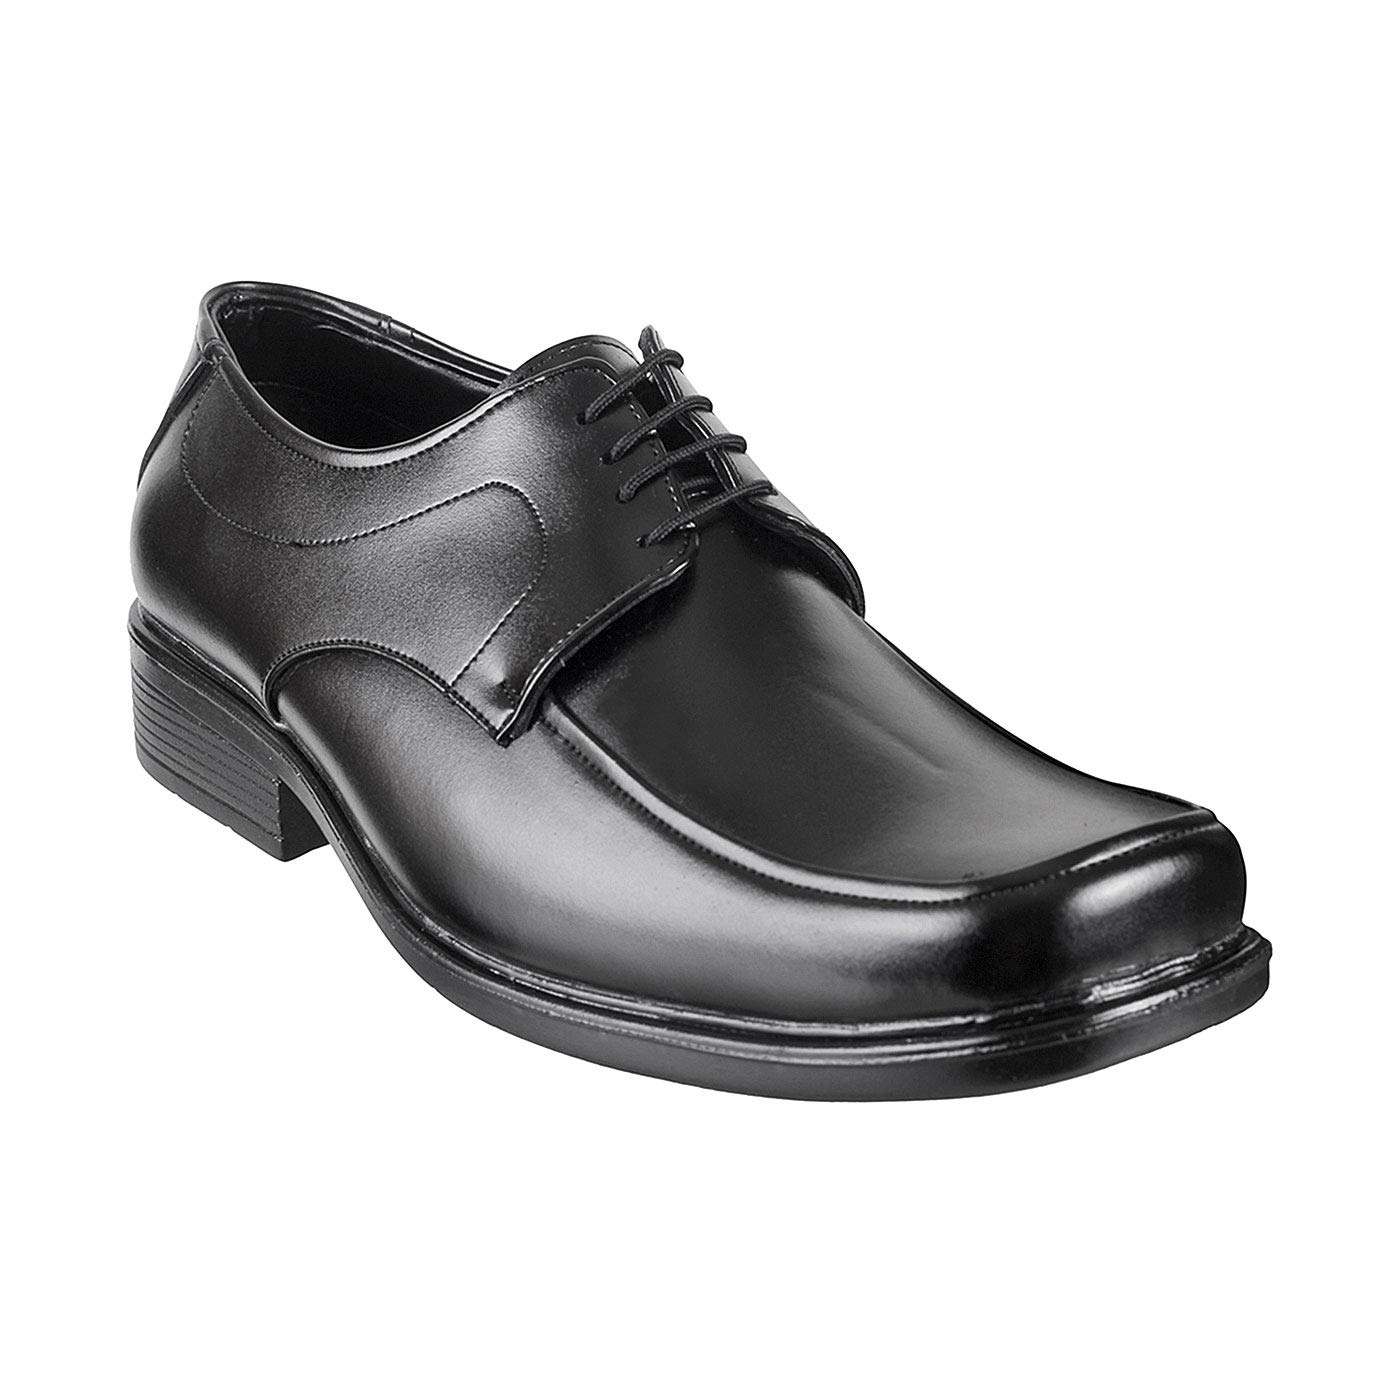 Size Extra Wide Formal Shoes for Men